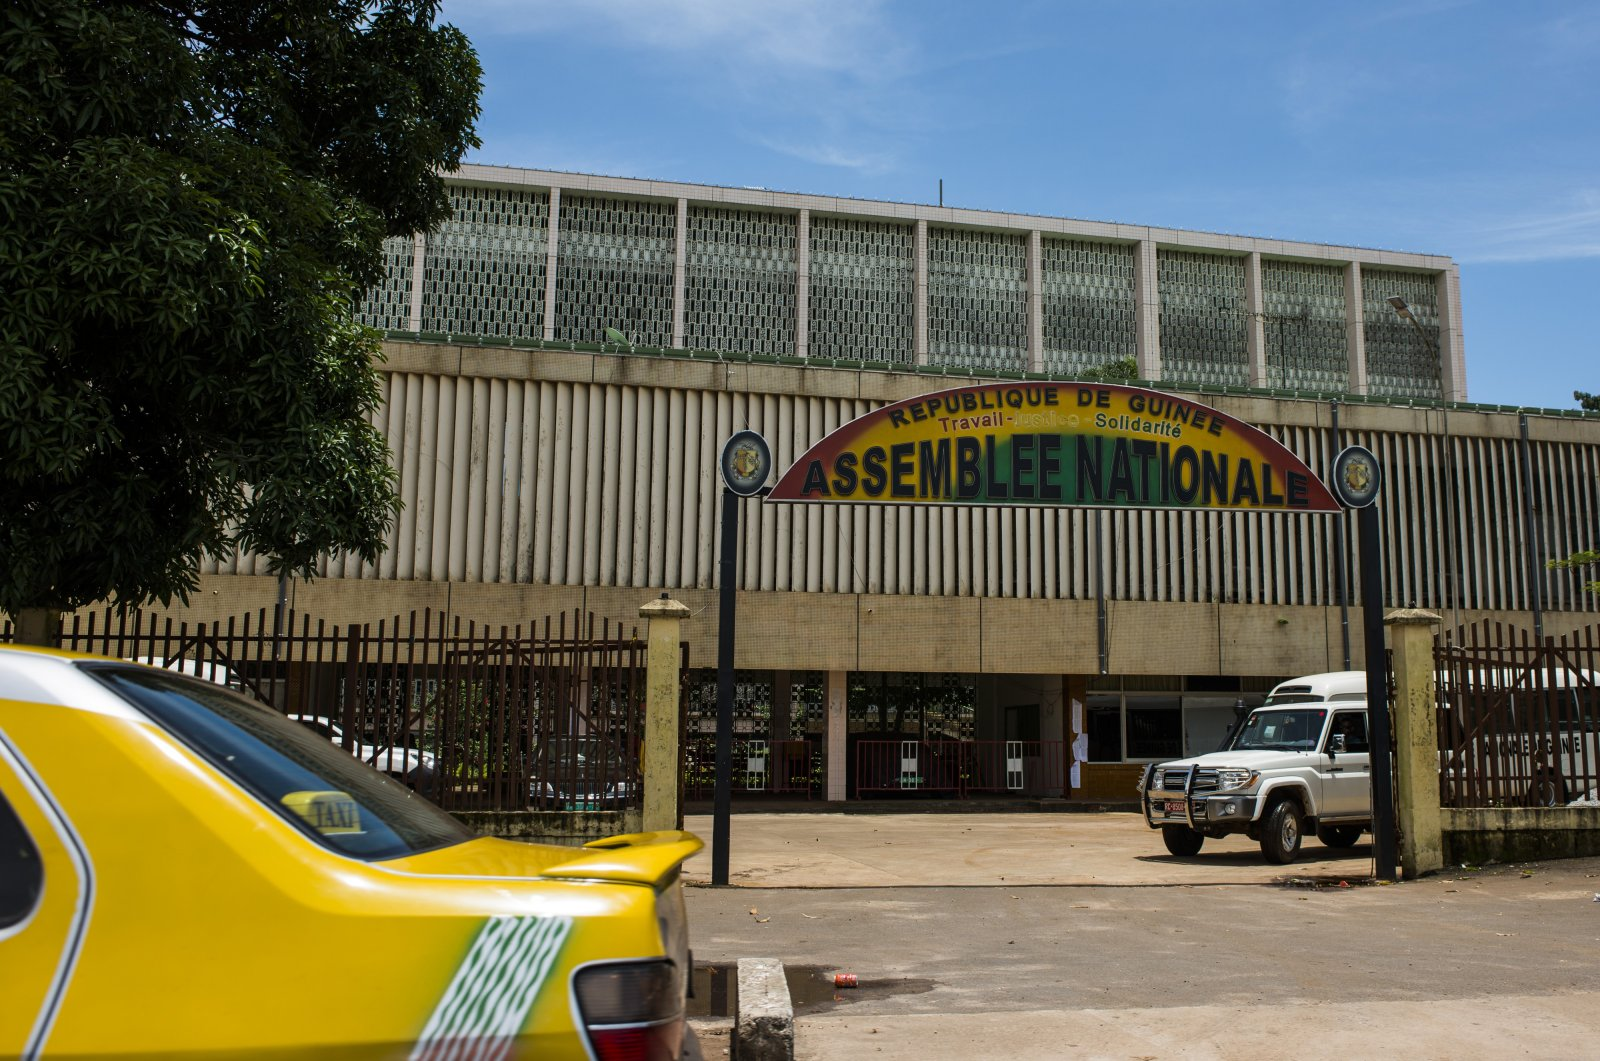 The Guinea national assembly, also known as the parliament, stands in Conakry, Guinea, Sept. 5, 2015. (Getty Images)